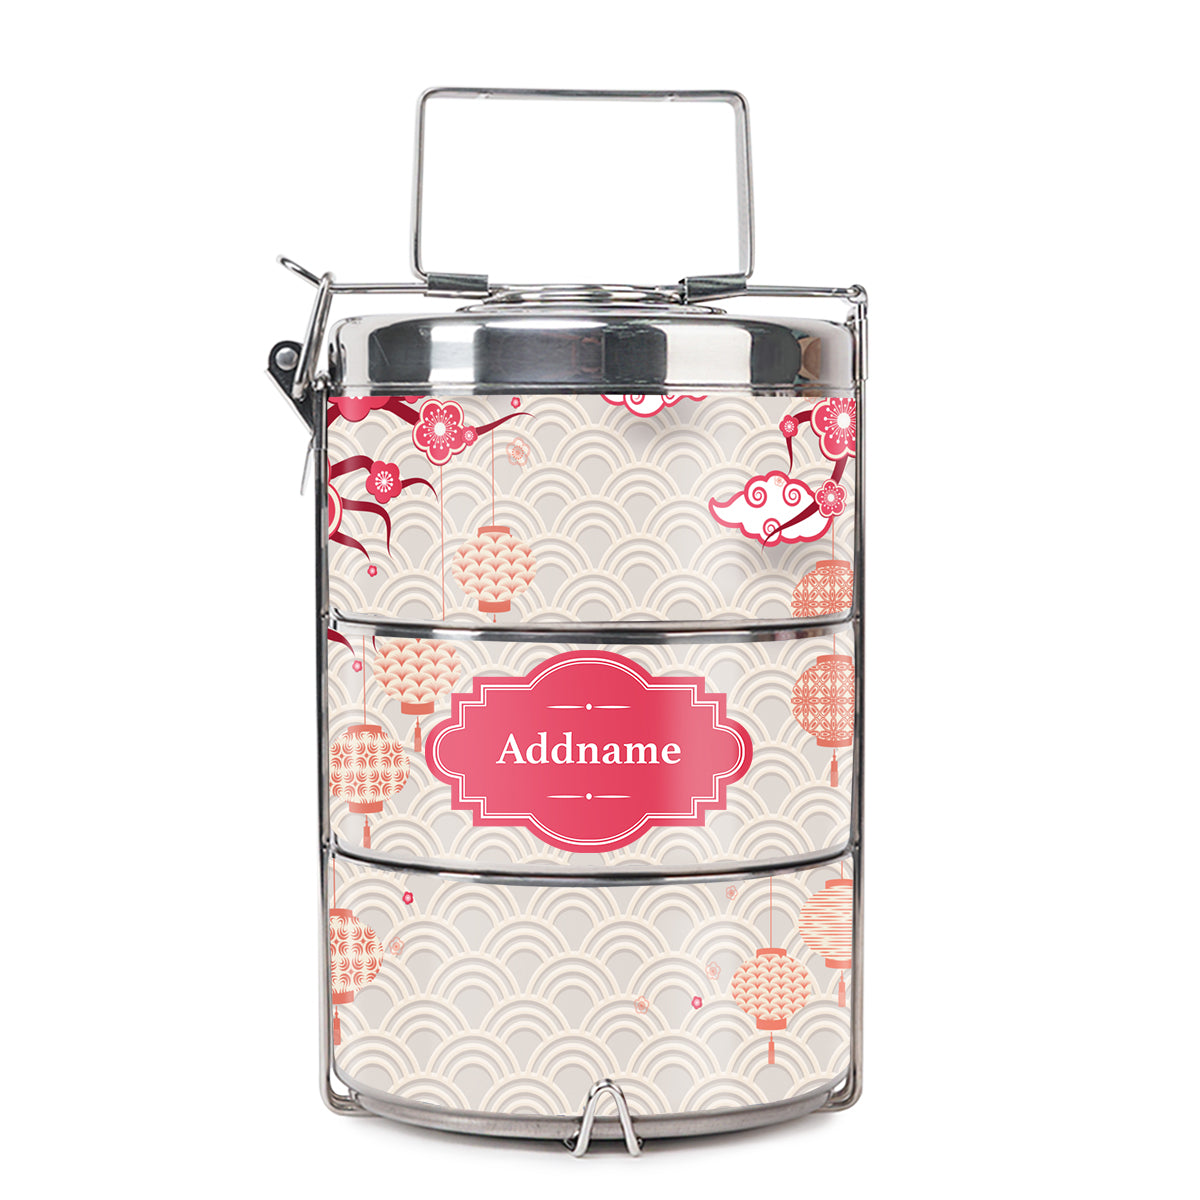 Teezbee.com - Sakura Insulated Tiffin Carrier